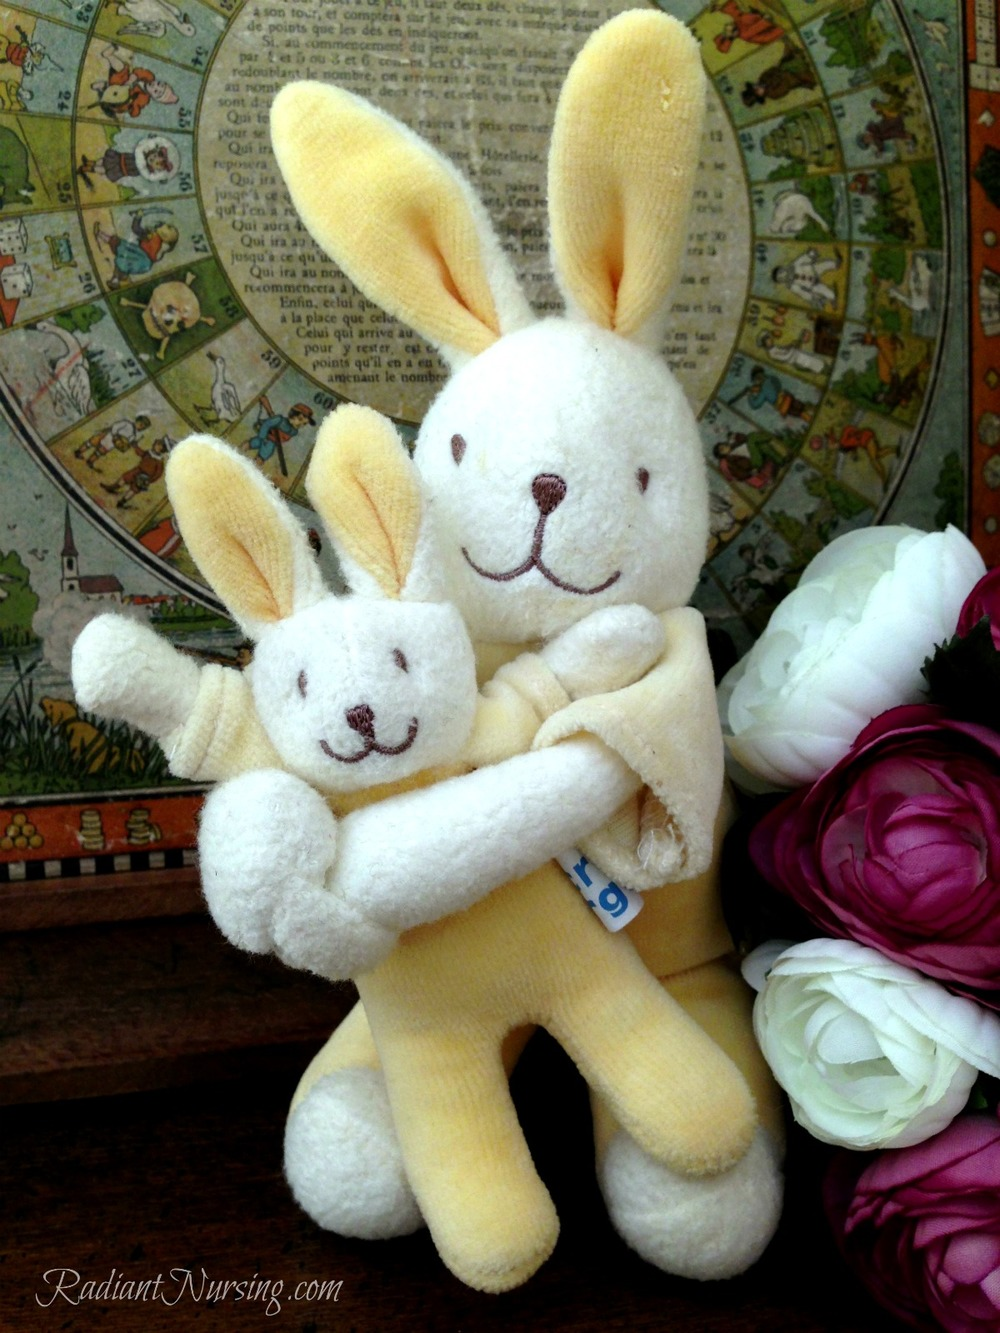 A momma bunny and a baby bunny for Easter!